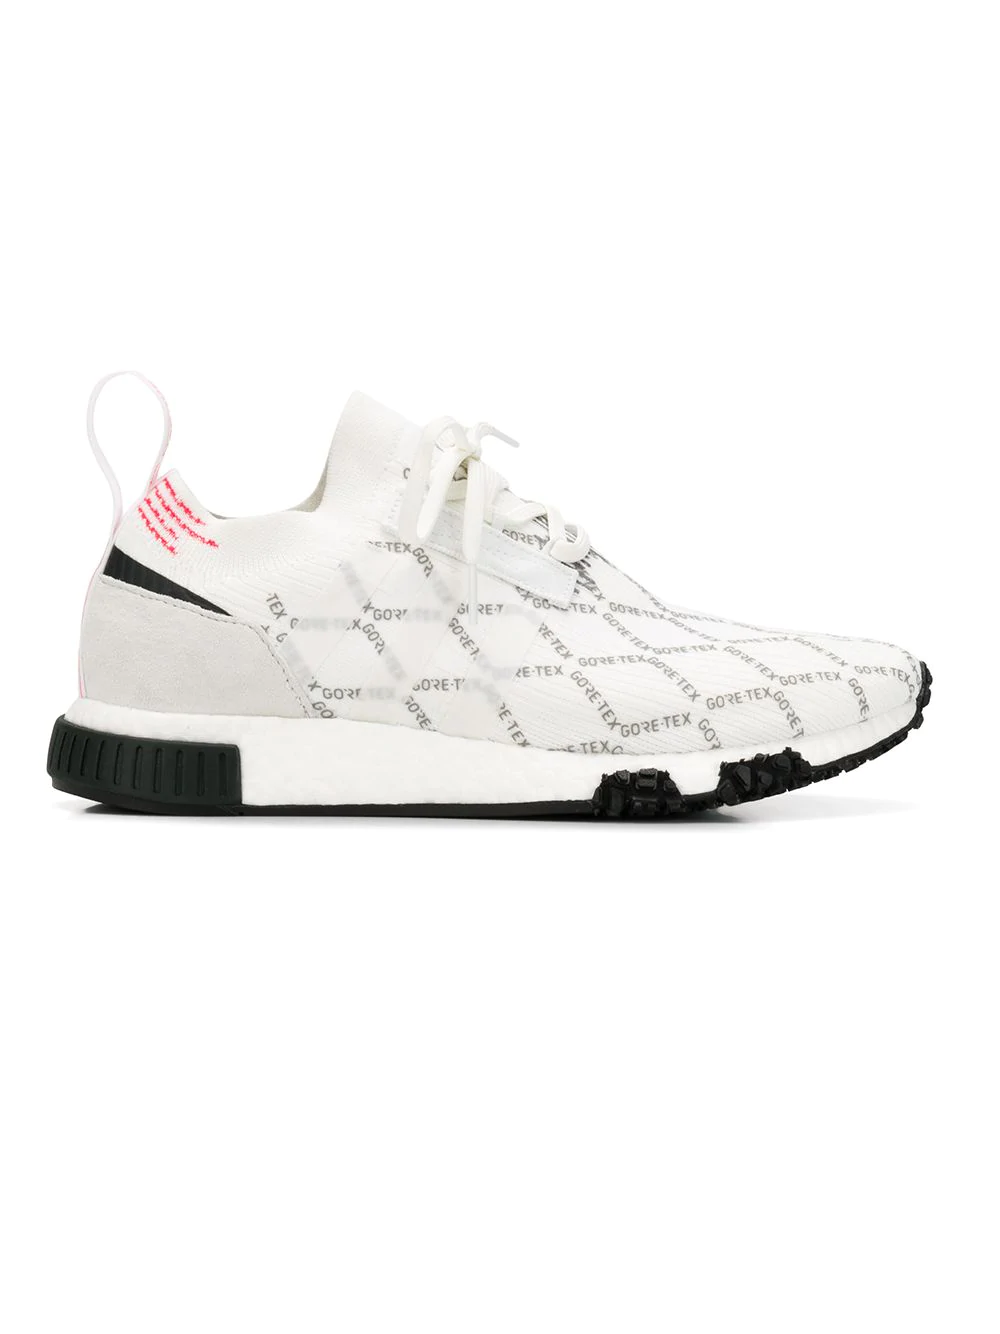 5b848f05bbd85 Adidas Originals Adidas Adidas Nmd Racer Sneakers - White